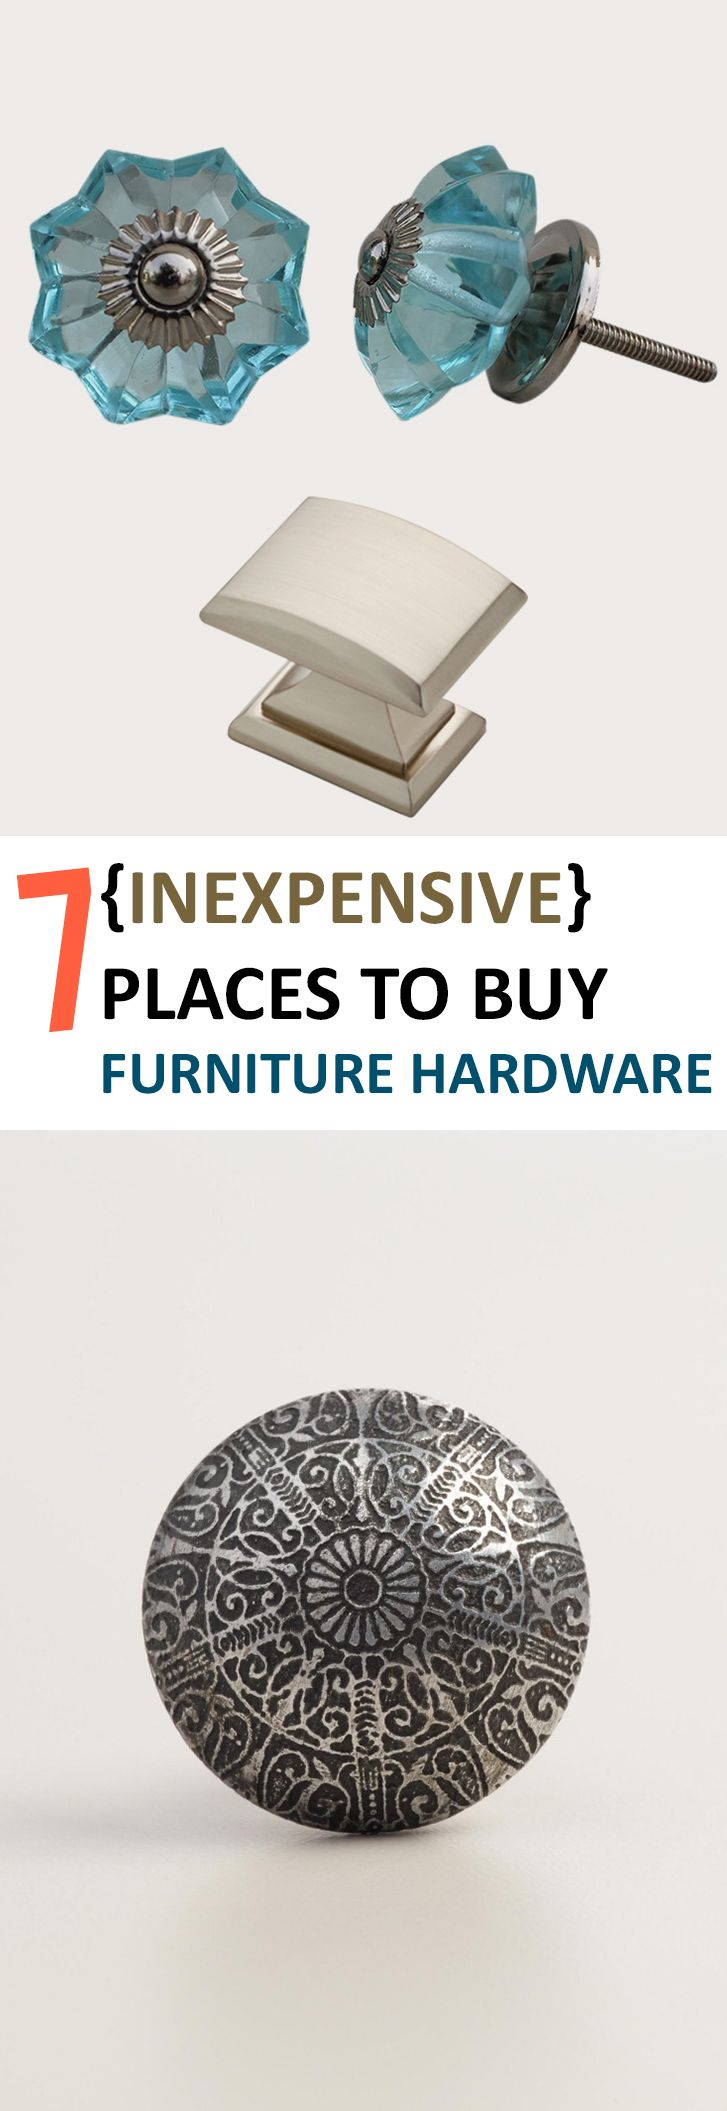 Furniture hardware, purchasing furniture hardware, furniture, popular pin, furniture remodel, remodeling furniture, thrift store furniture hacks, shopping tips and tricks.